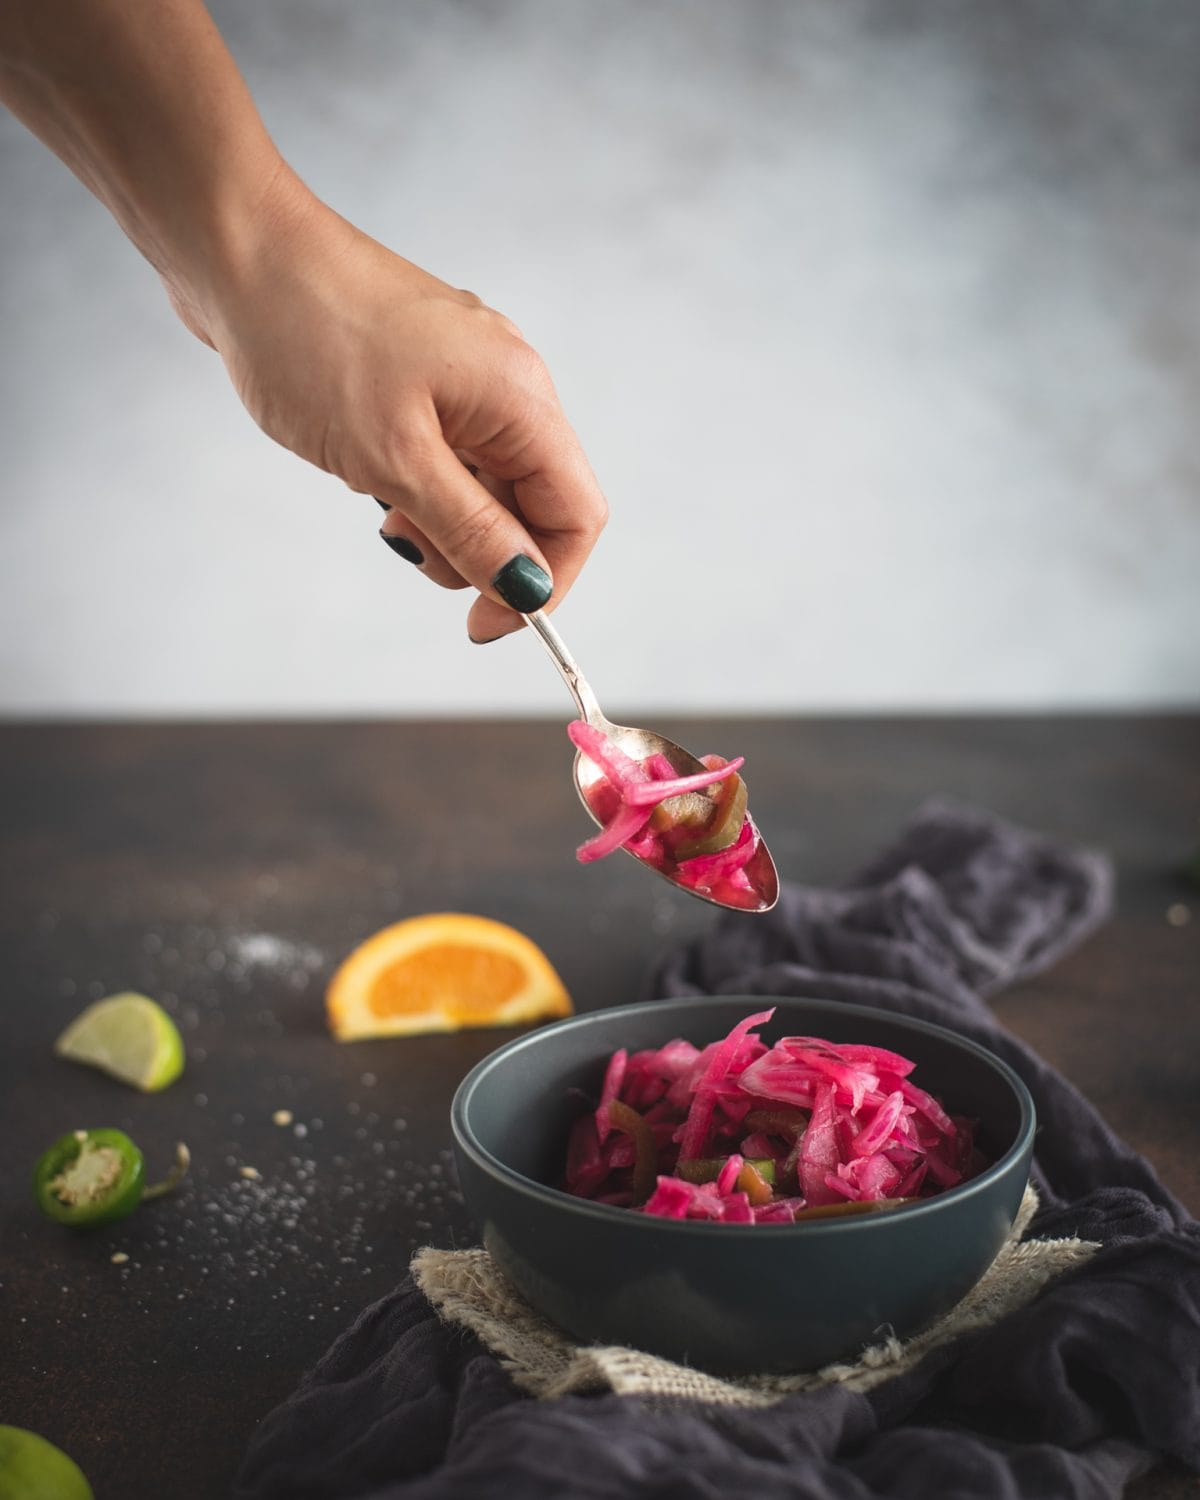 Hand with spoon scooping pickled red onions from bowl